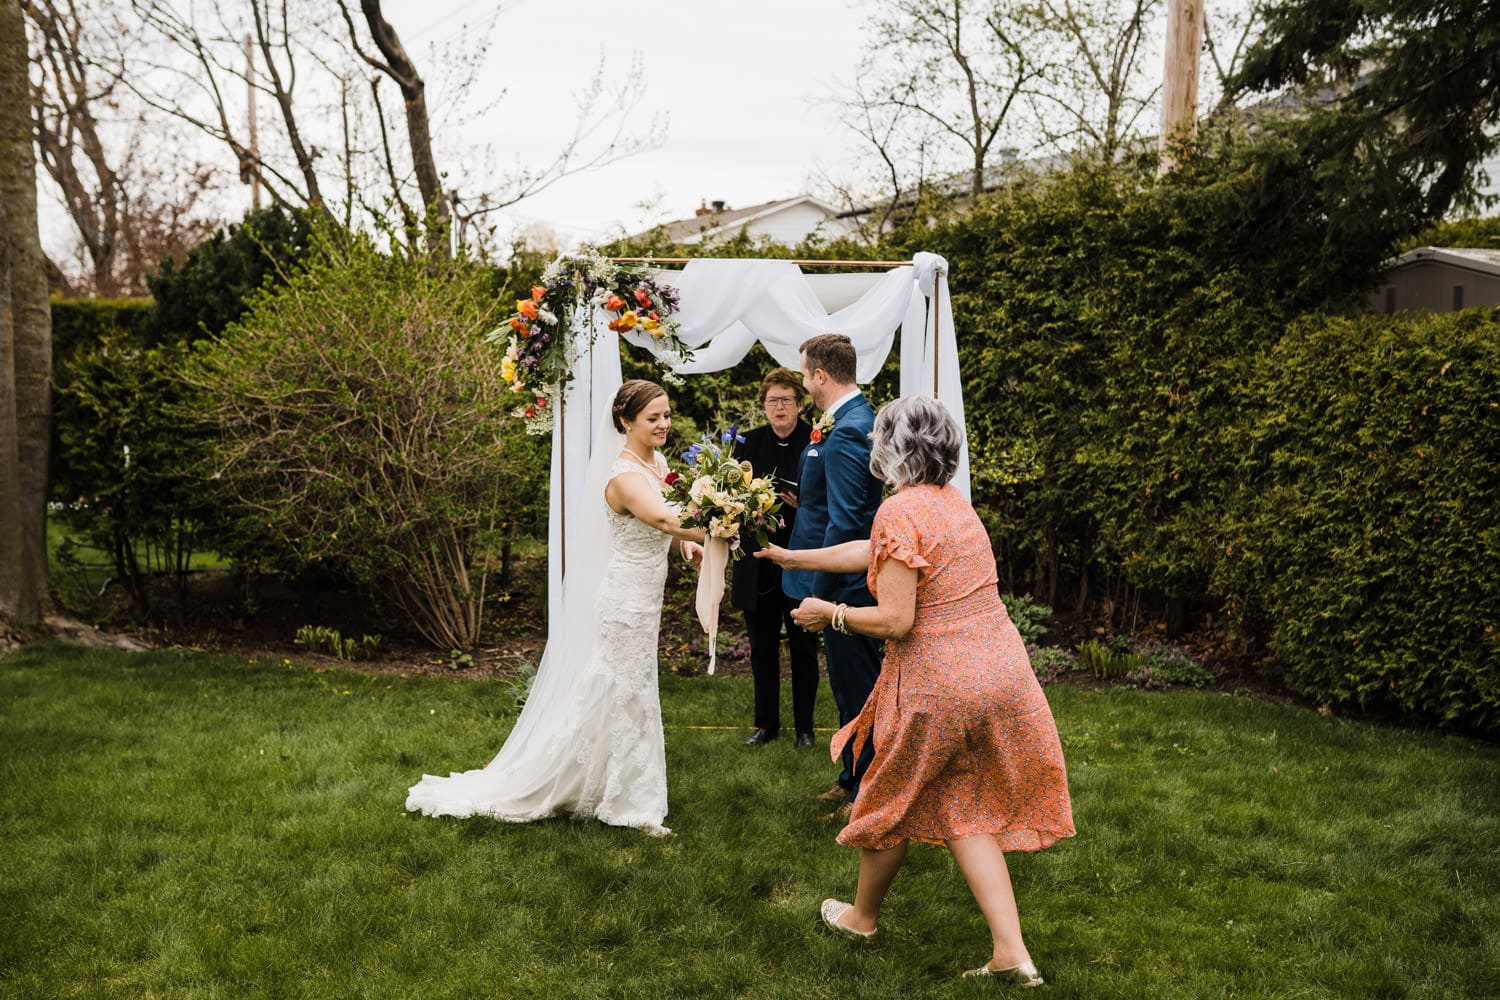 mother of the bride steps in to take bouquet from bride